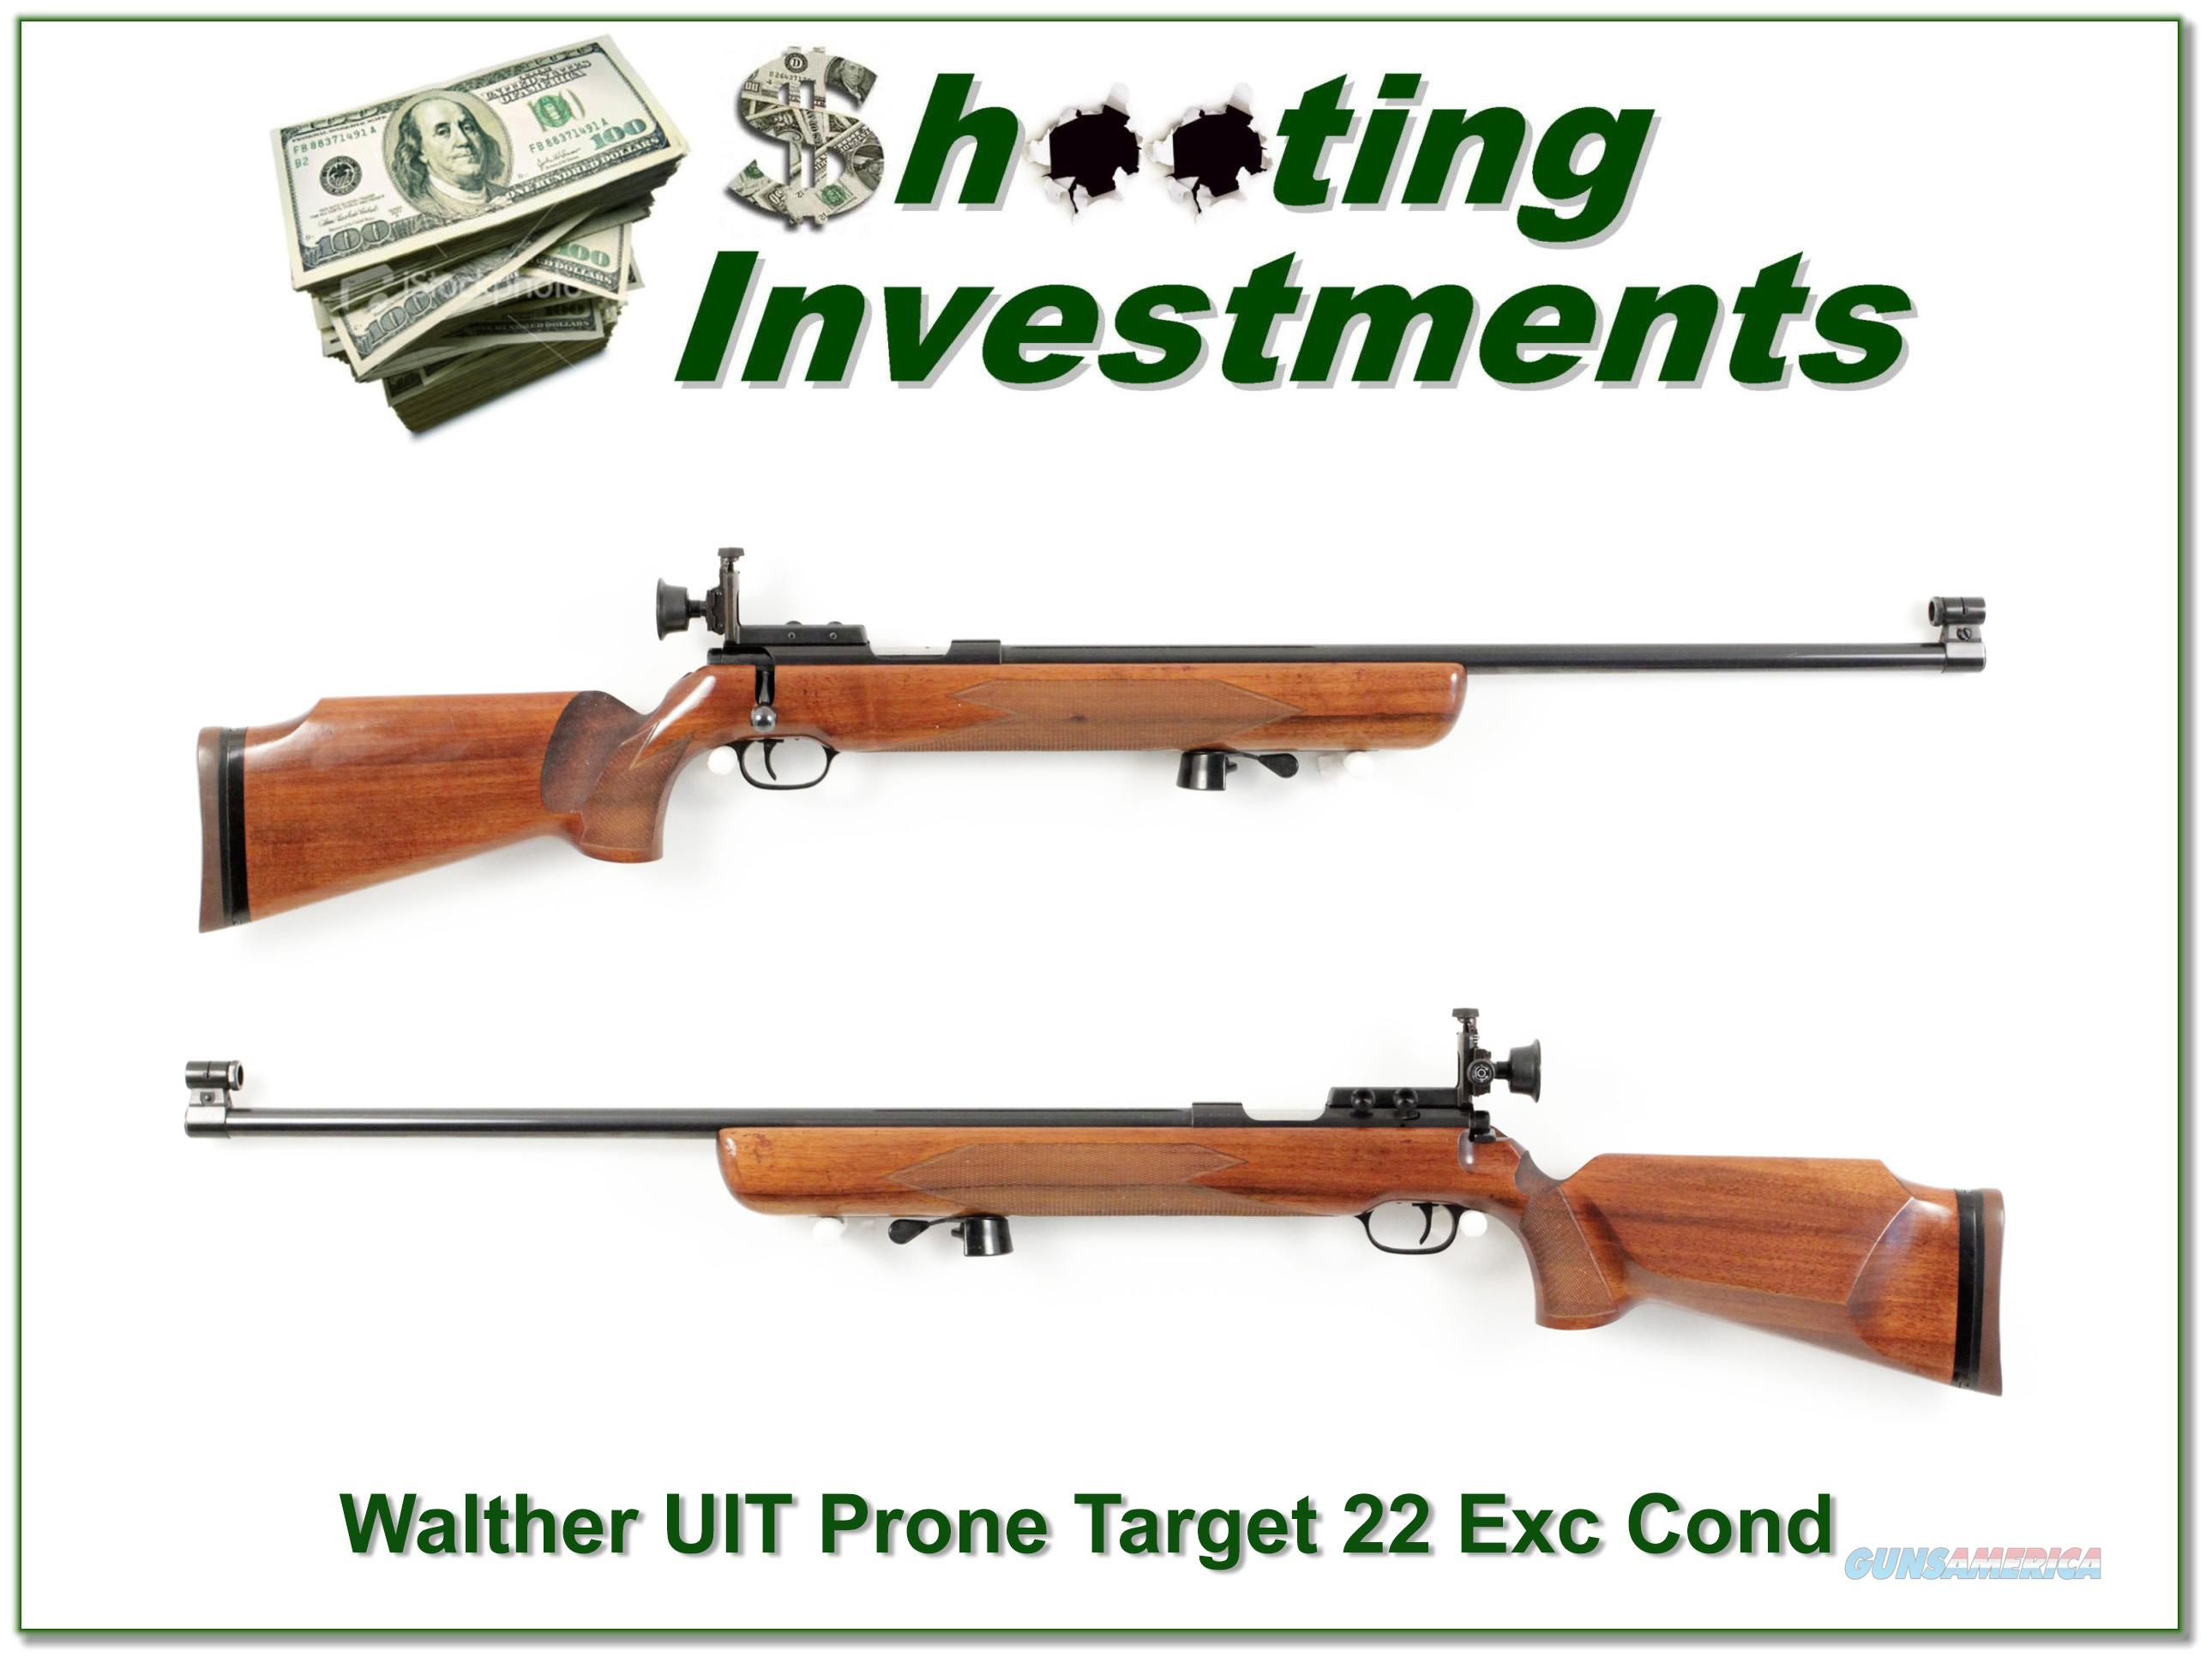 Walther UIT Prone single shot 22LR  Guns > Rifles > Walther Rifles > Umarex